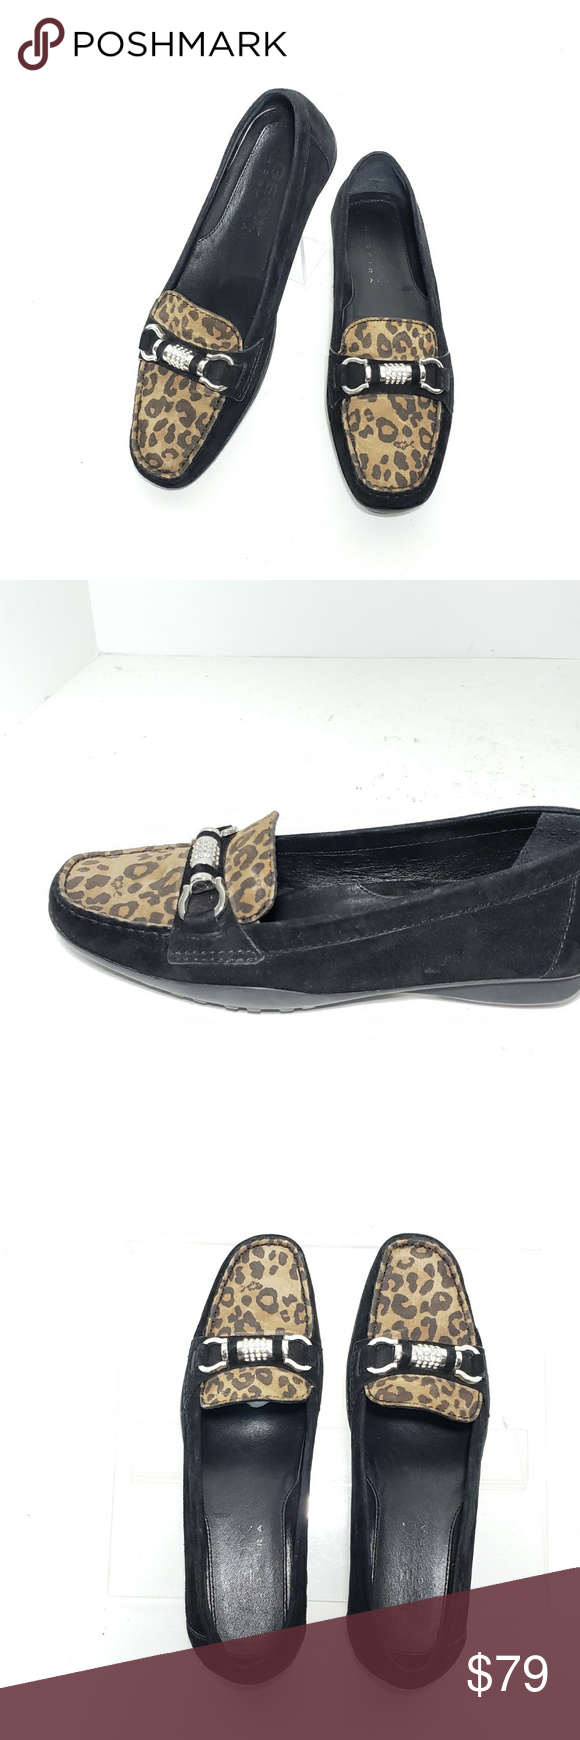 leopard driving loafers